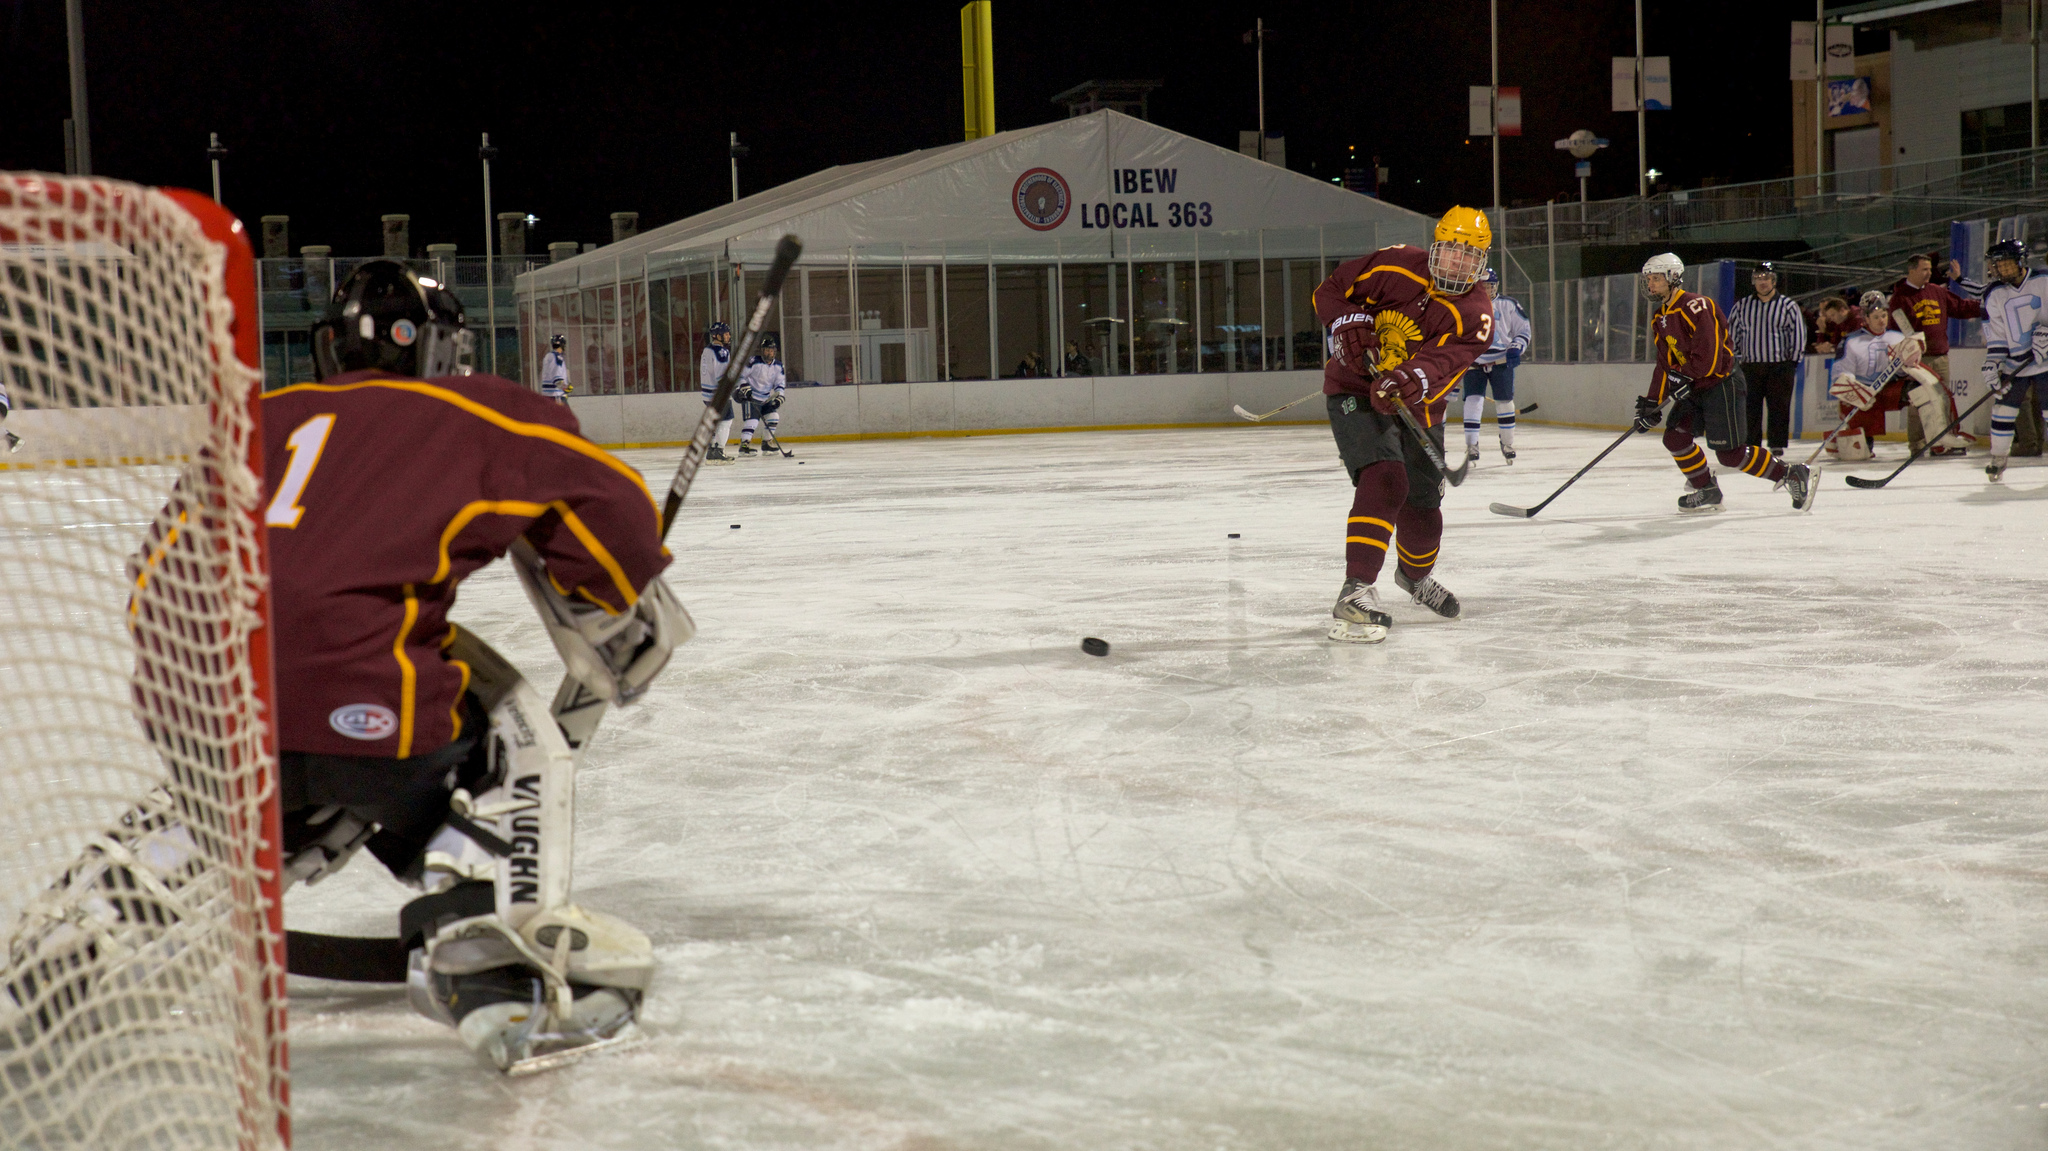 Stac Ice Hockey during a match